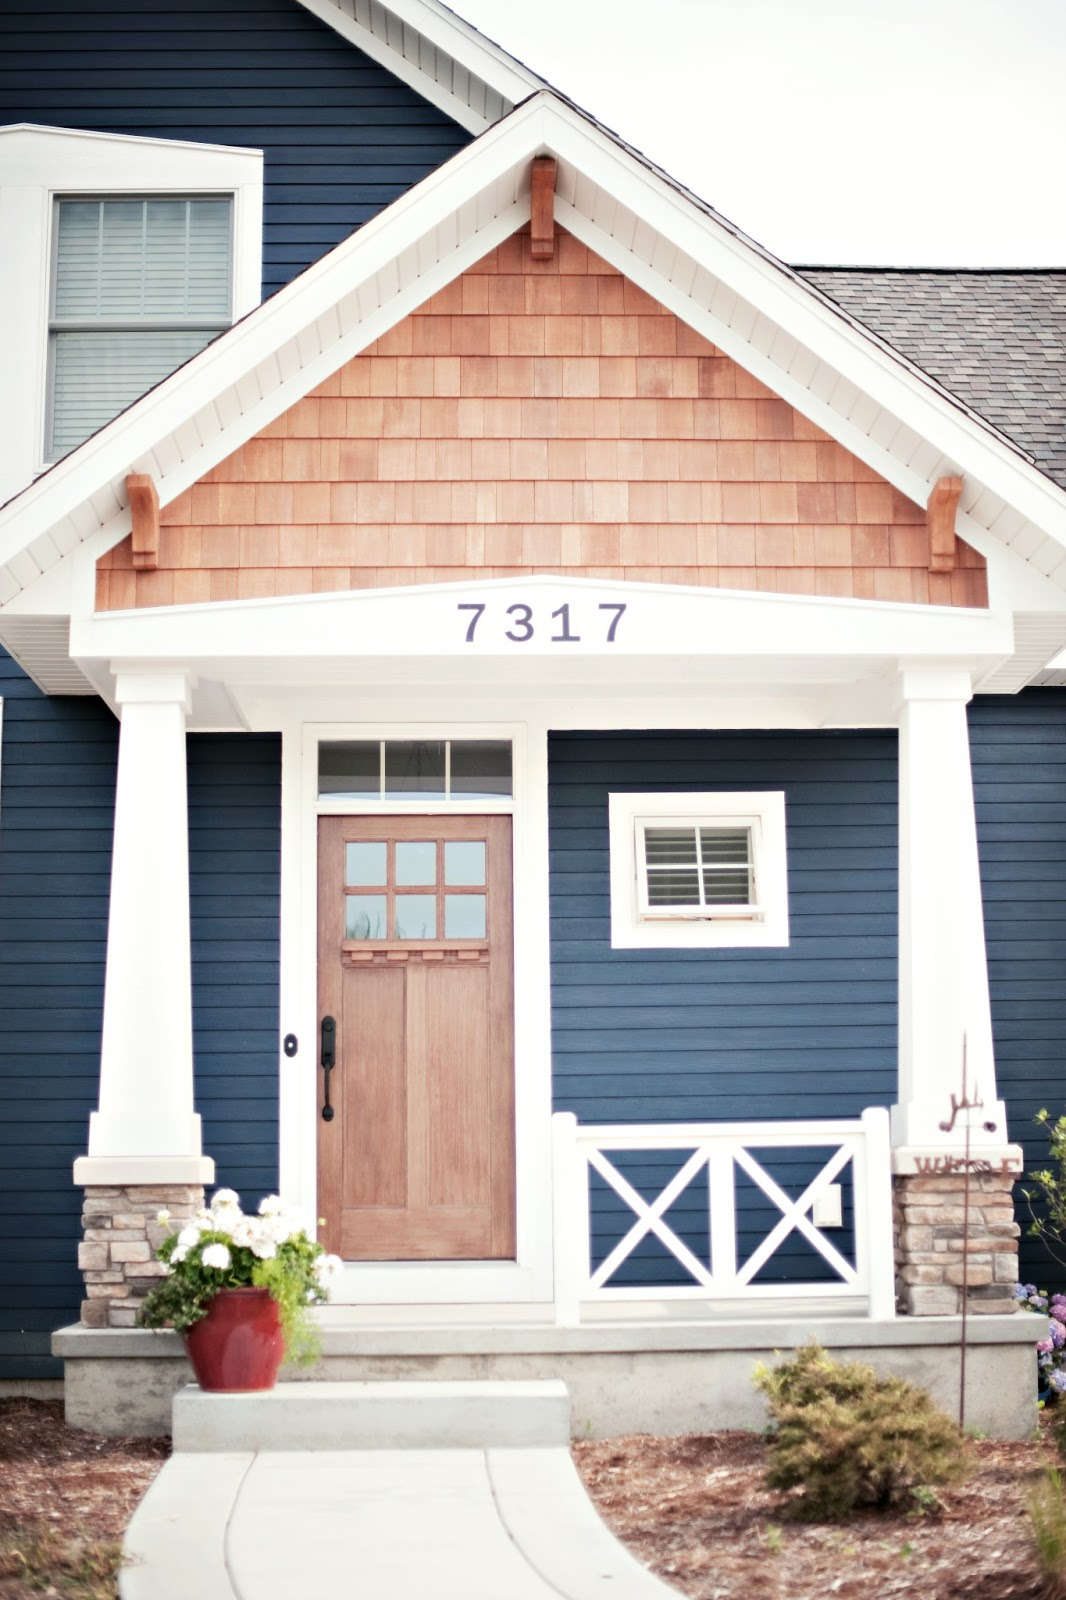 Lisa mende design best navy blue paint colors 8 of my favs - Best exterior color for small house ...